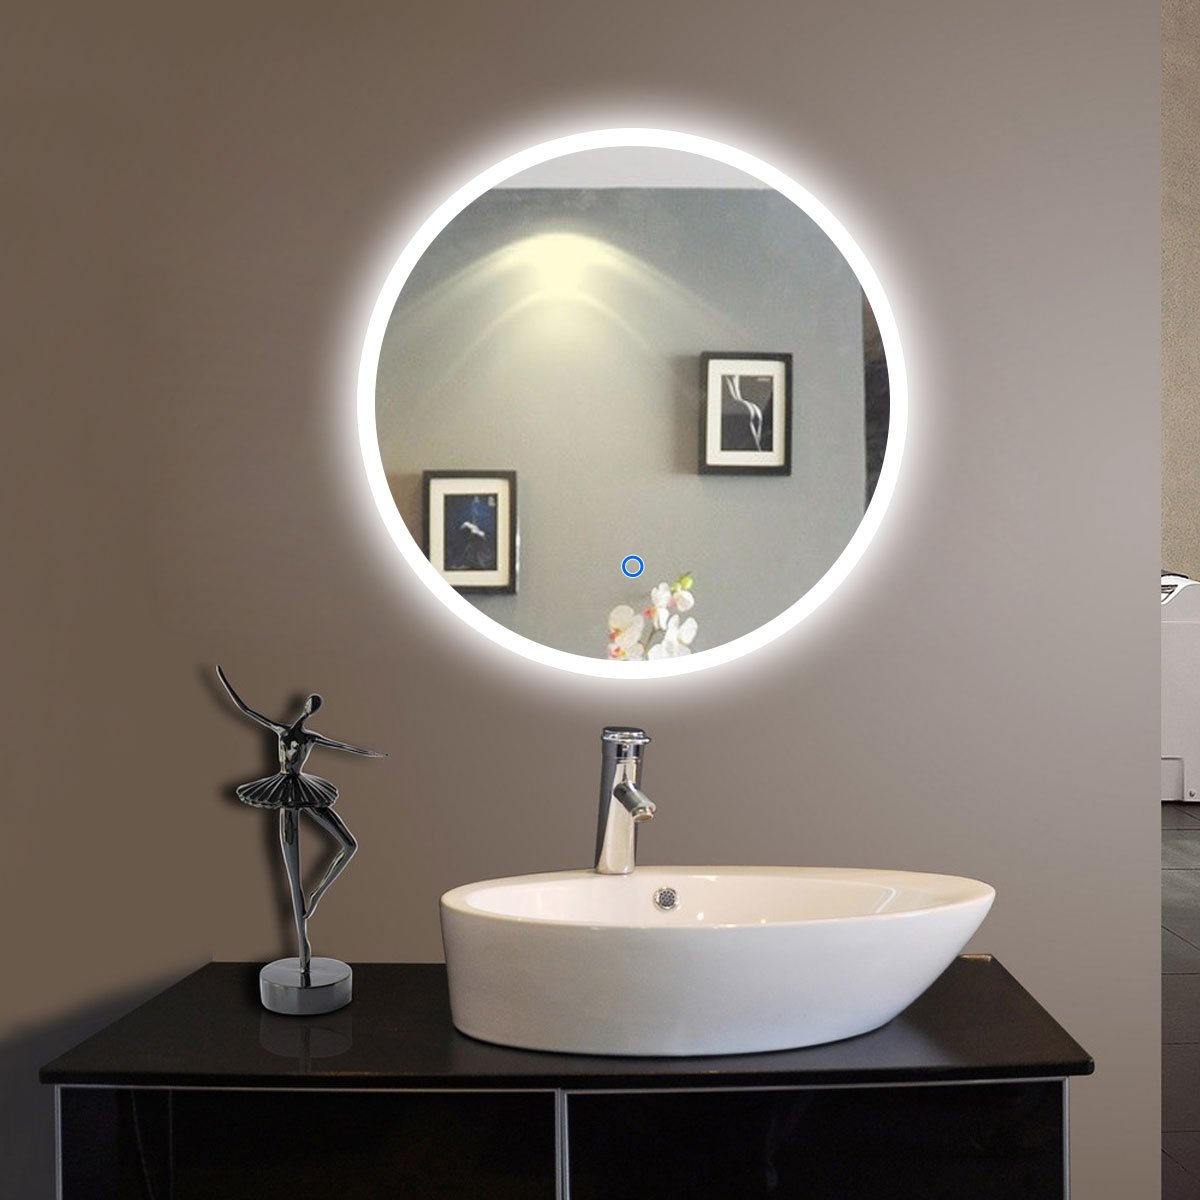 24 x 24 In Round LED Bathroom Silvered Mirror with Touch Button (C-CL065-1)